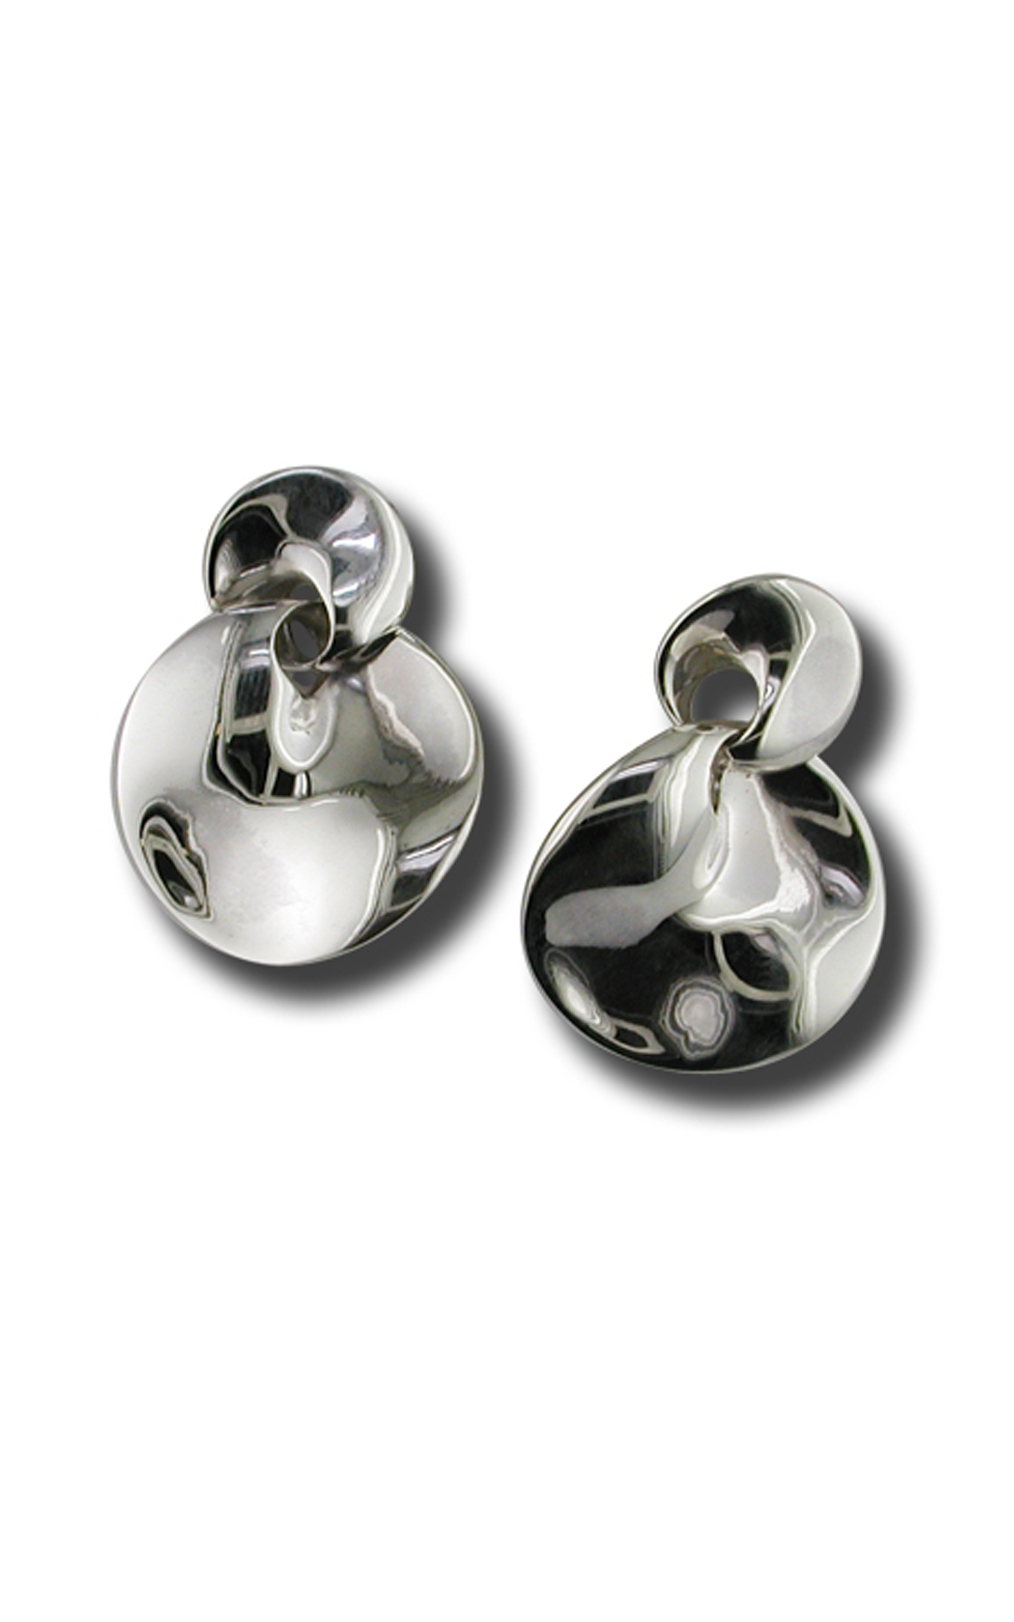 Zina Contemporary Earrings B1313 product image